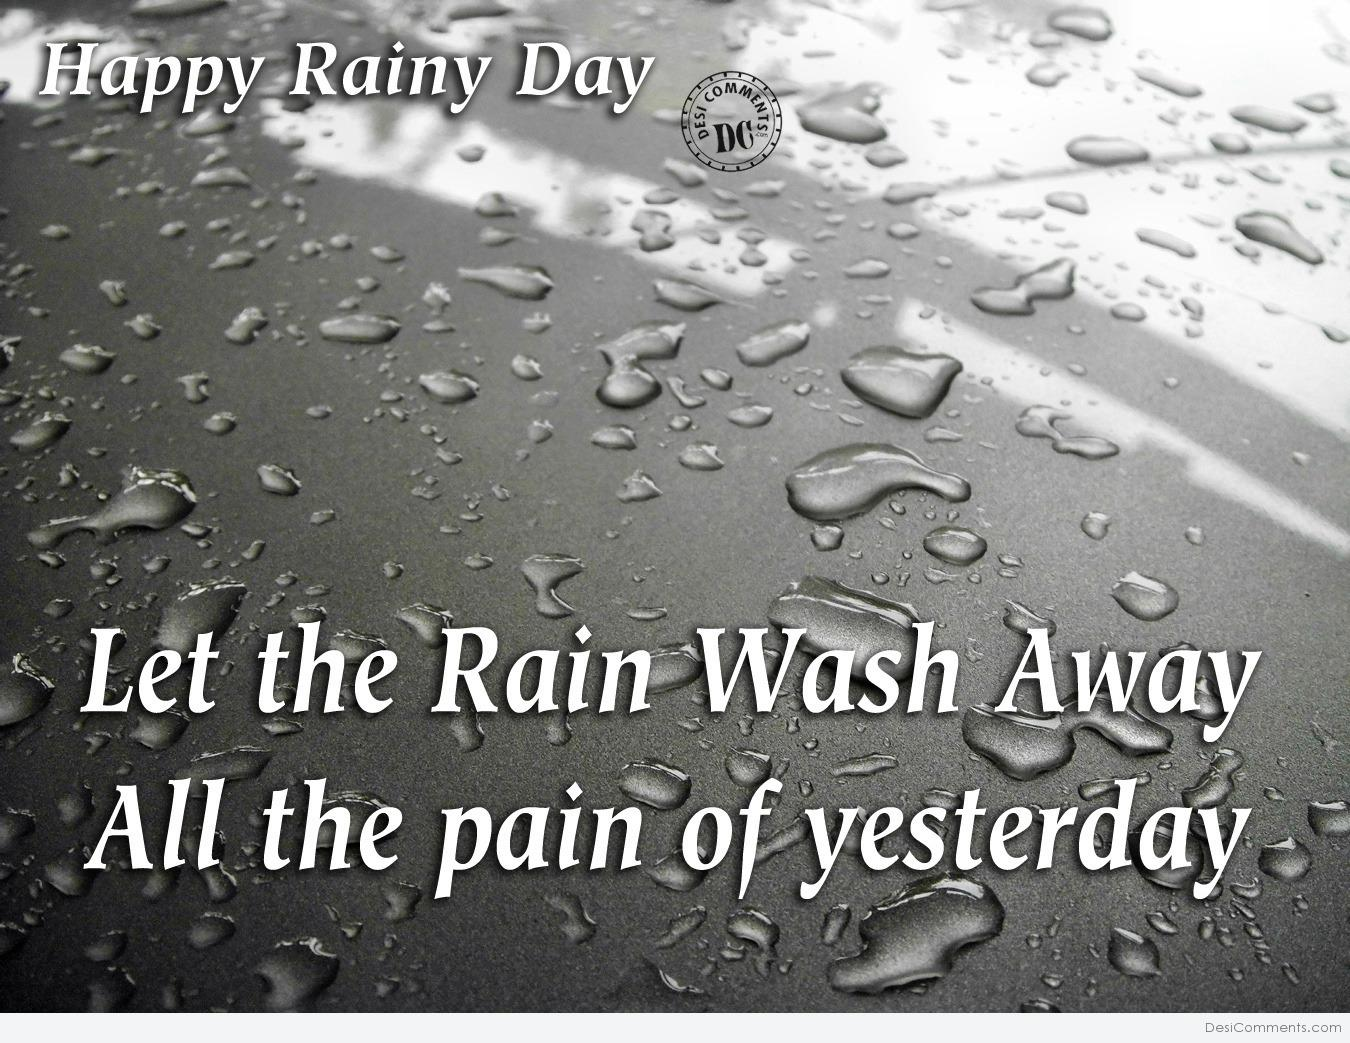 Happy Rainy Day - Desi...